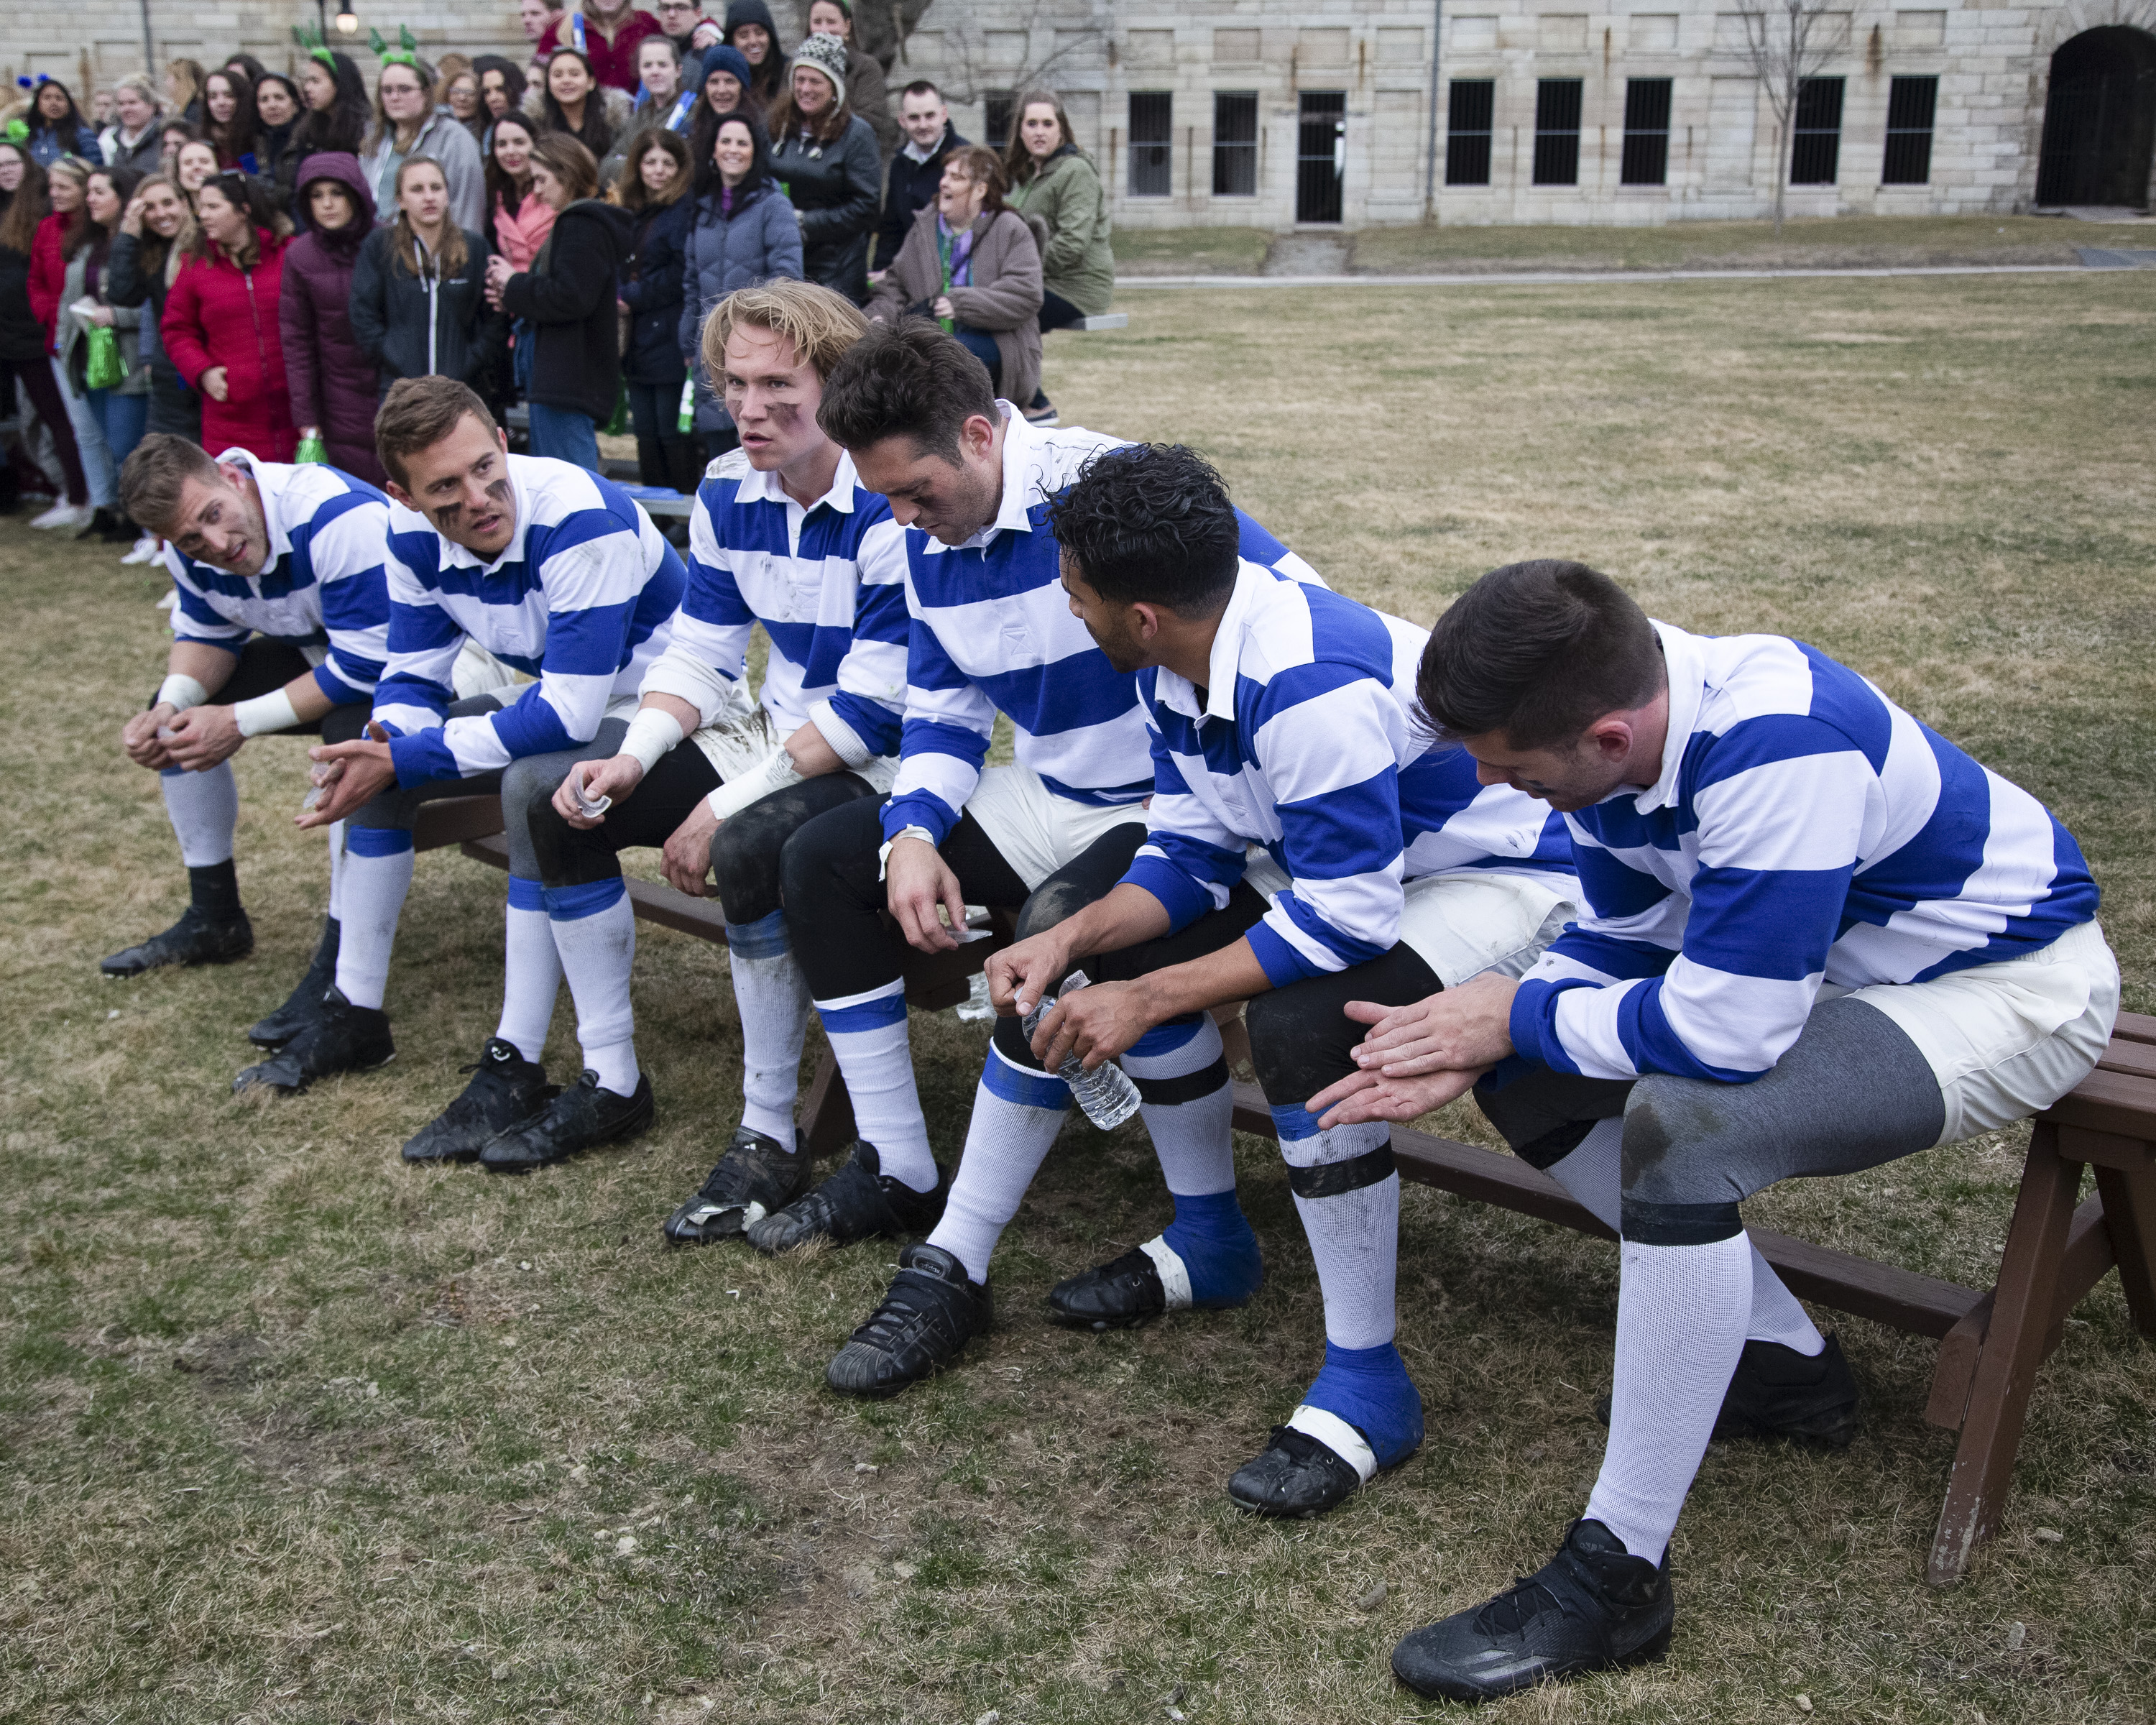 Hannah takes her journey to find love on the road as she and the remaining 15 men travel to Boston and the beautiful seaside city of Newport, Rhode Island. In Newport, 13 men get down and dirty, competing in a fierce but exciting rugby game at Fort Adam, home of the champion Newport Rugby Football Club, which sends one man to the hospital. Later that night, two men go head-to-head and Hannah is caught in the middle. Who is telling the truth? Will she follow her heart or her head? At an explosive cocktail party, two rivals take turns throwing each other under the bus, even as Hannah attempts to focus on her blossoming relationships. Will she keep both or will one make an early exit? (Image: Robert Clark/ ABC)